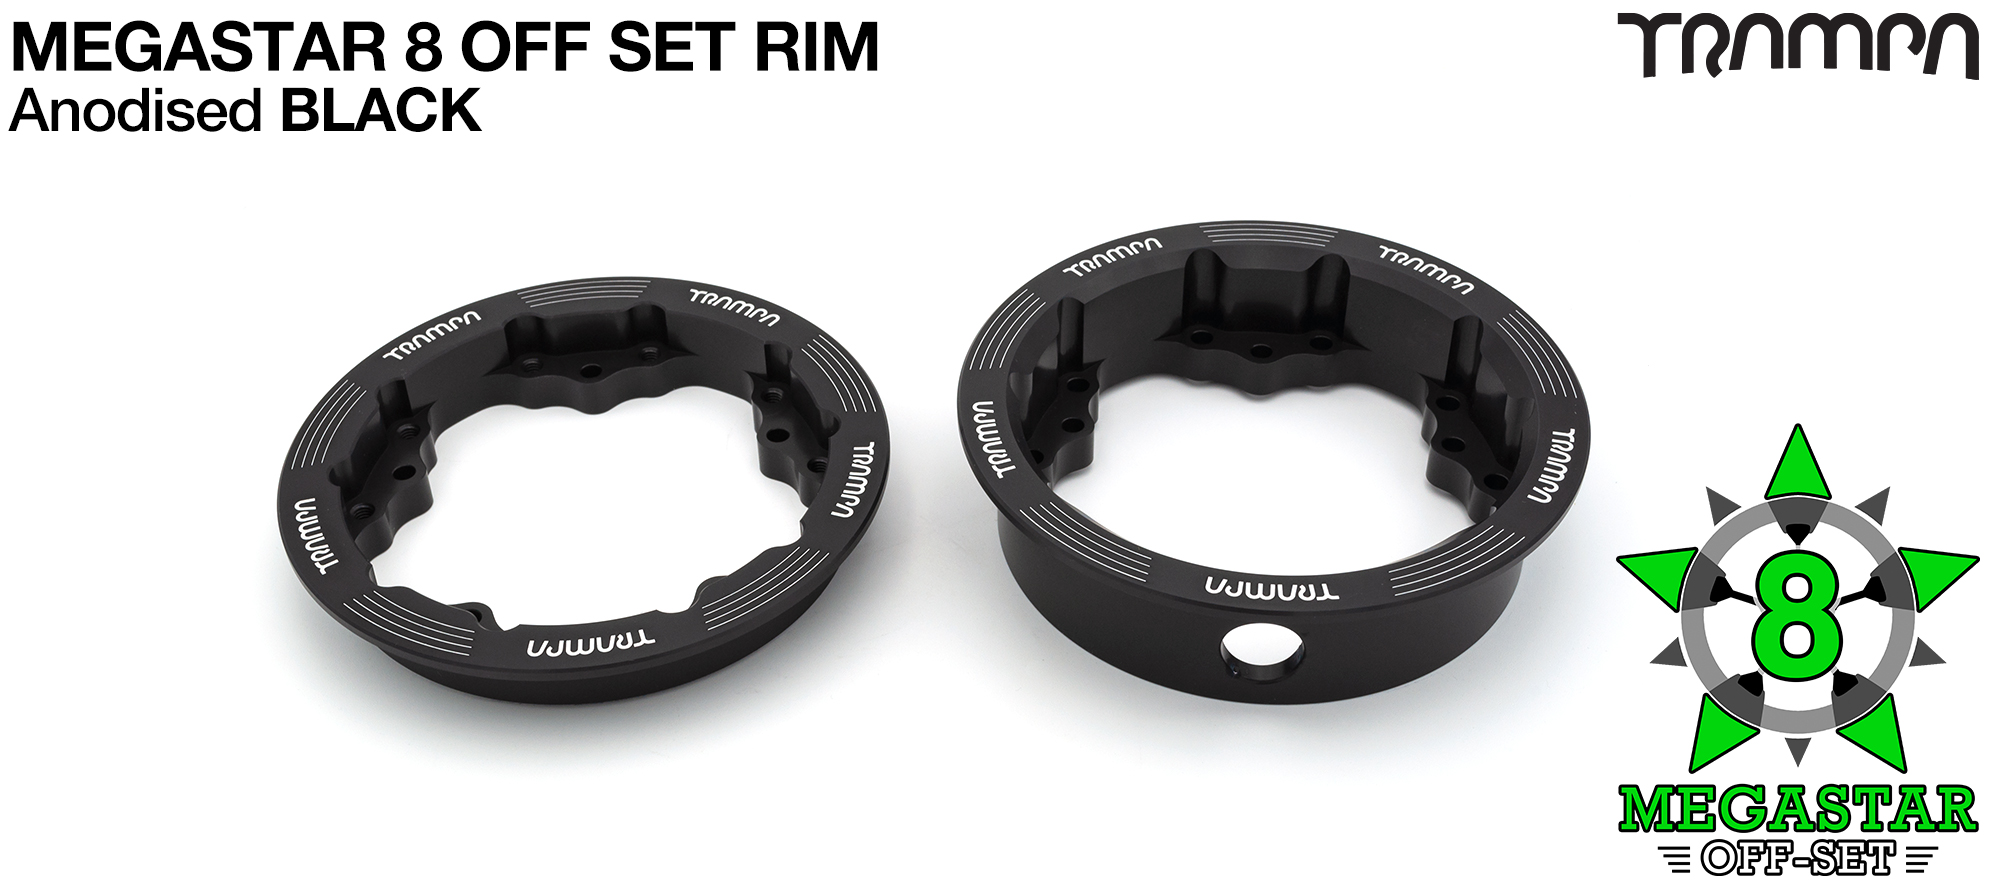 OFF-SET 8 inch MEGASTAR Rims - BLACK